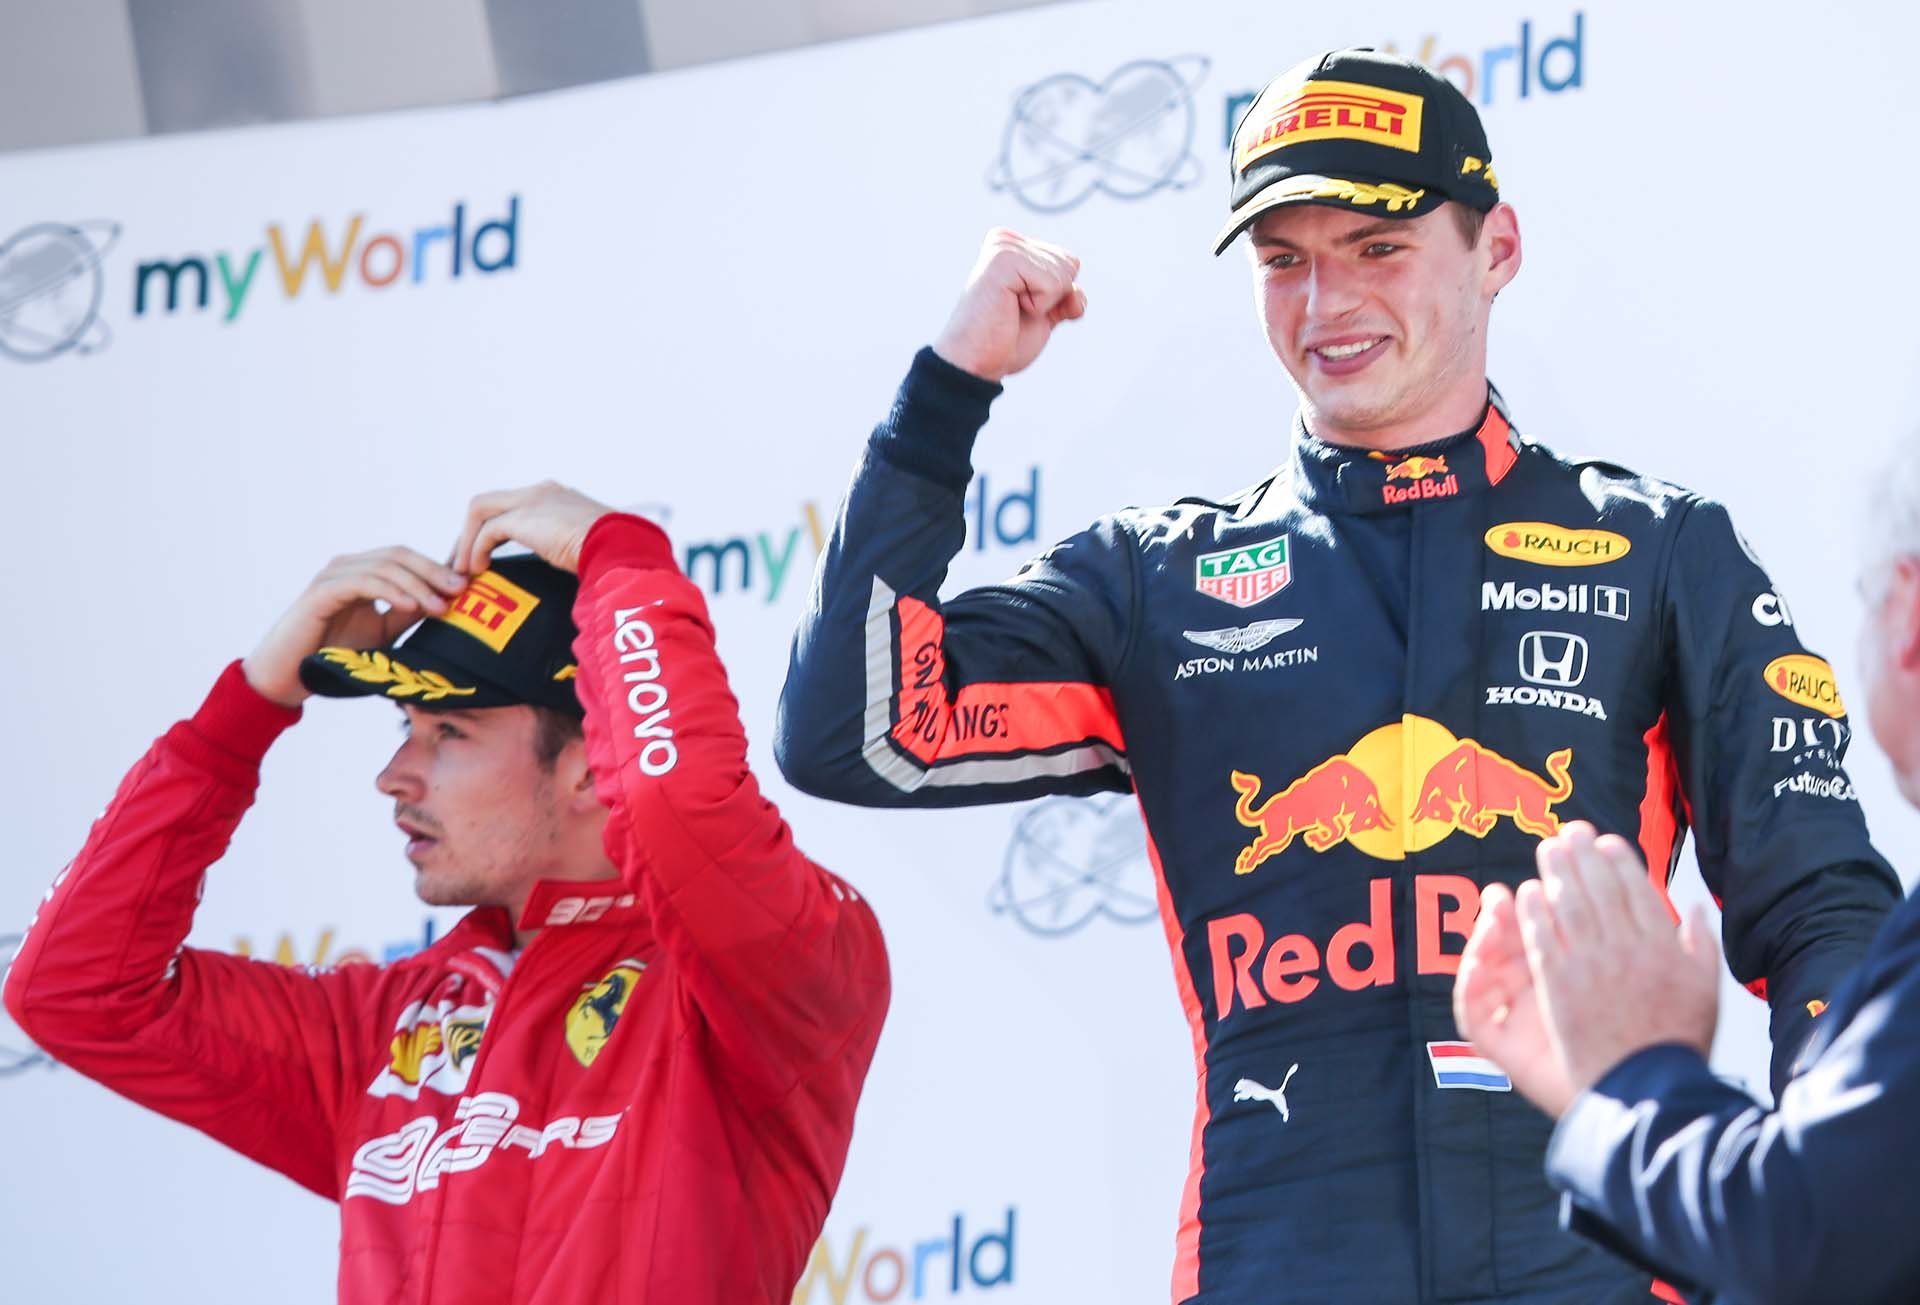 SPIELBERG,AUSTRIA,30.JUN.19 - MOTORSPORTS, FORMULA 1 - Grand Prix of Austria, Red Bull Ring. Image shows Charles Leclerc (MON/ Ferrari) and Max Verstappen (NED/ Red Bull Racing). Photo: GEPA pictures/ Harald Steiner - For editorial use only. Image is free of charge.